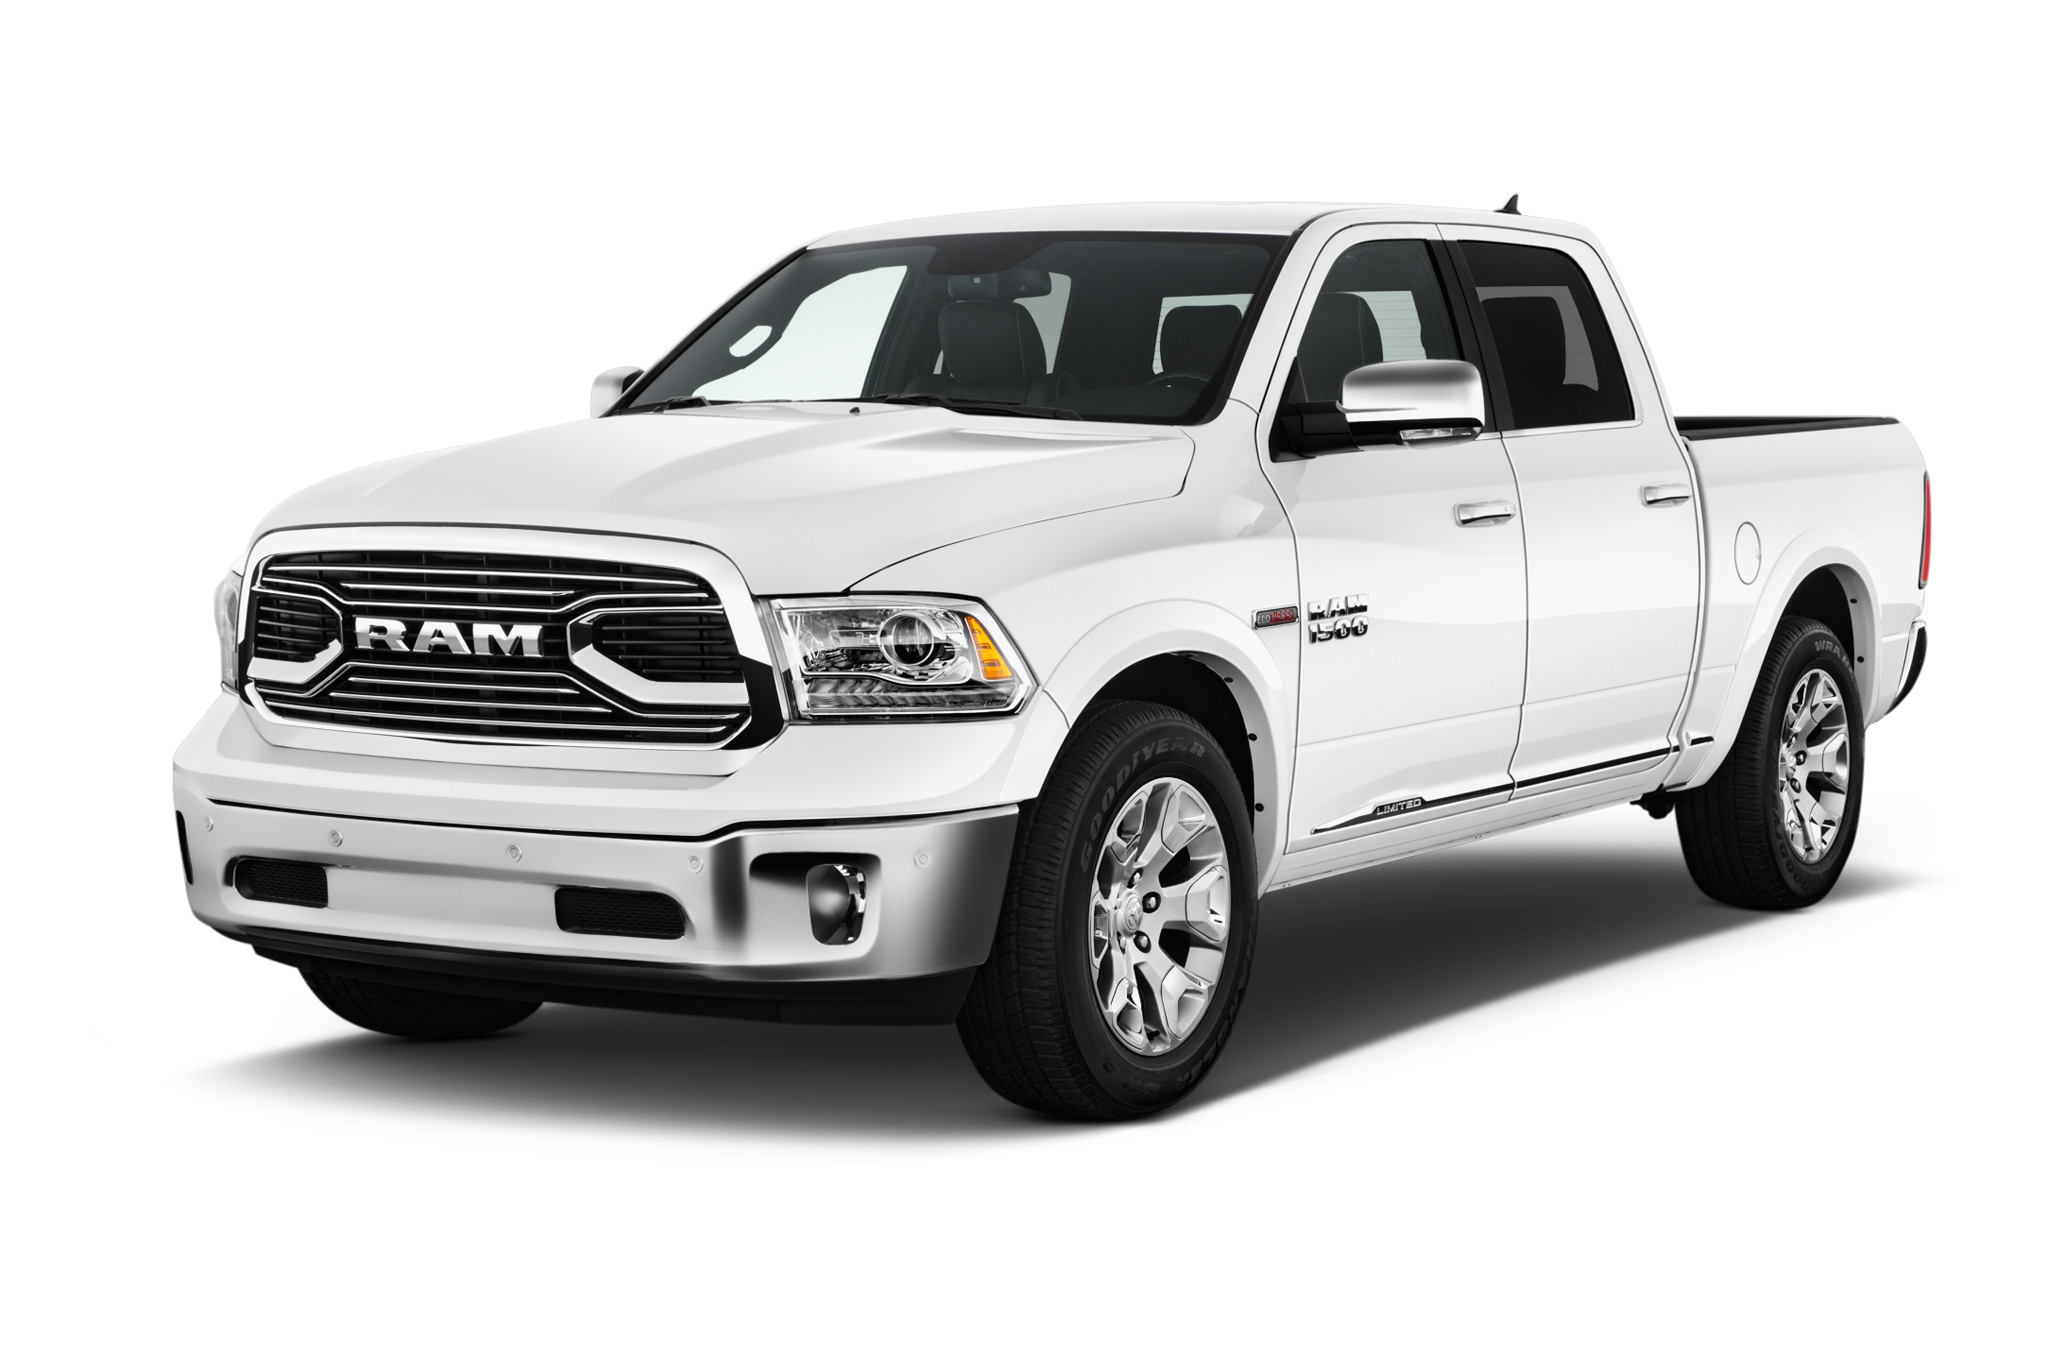 2017 ram 1500 big horn png. Reviews and rating